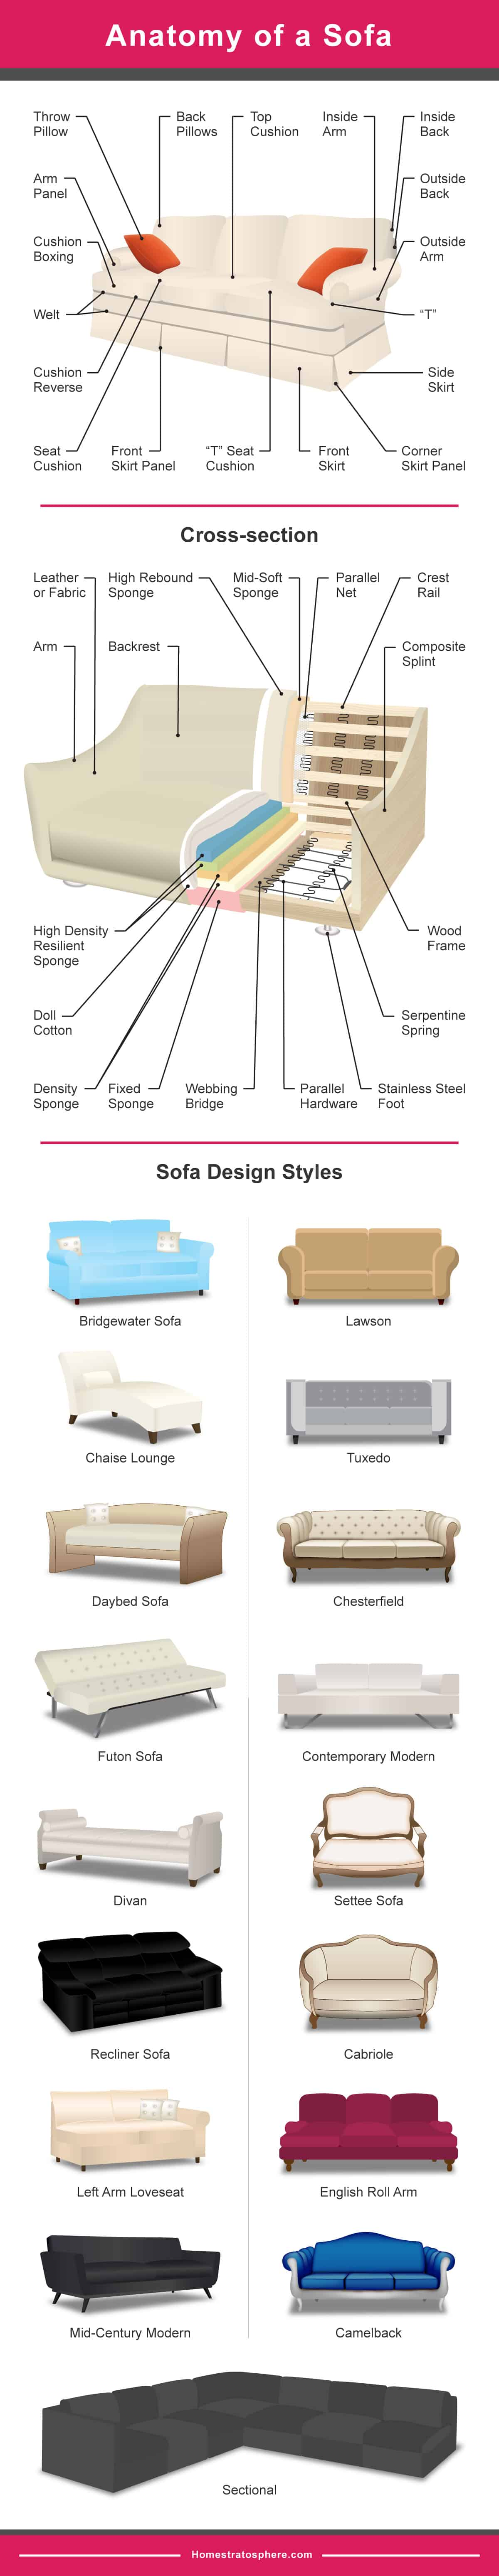 Sofa styles and anatomy